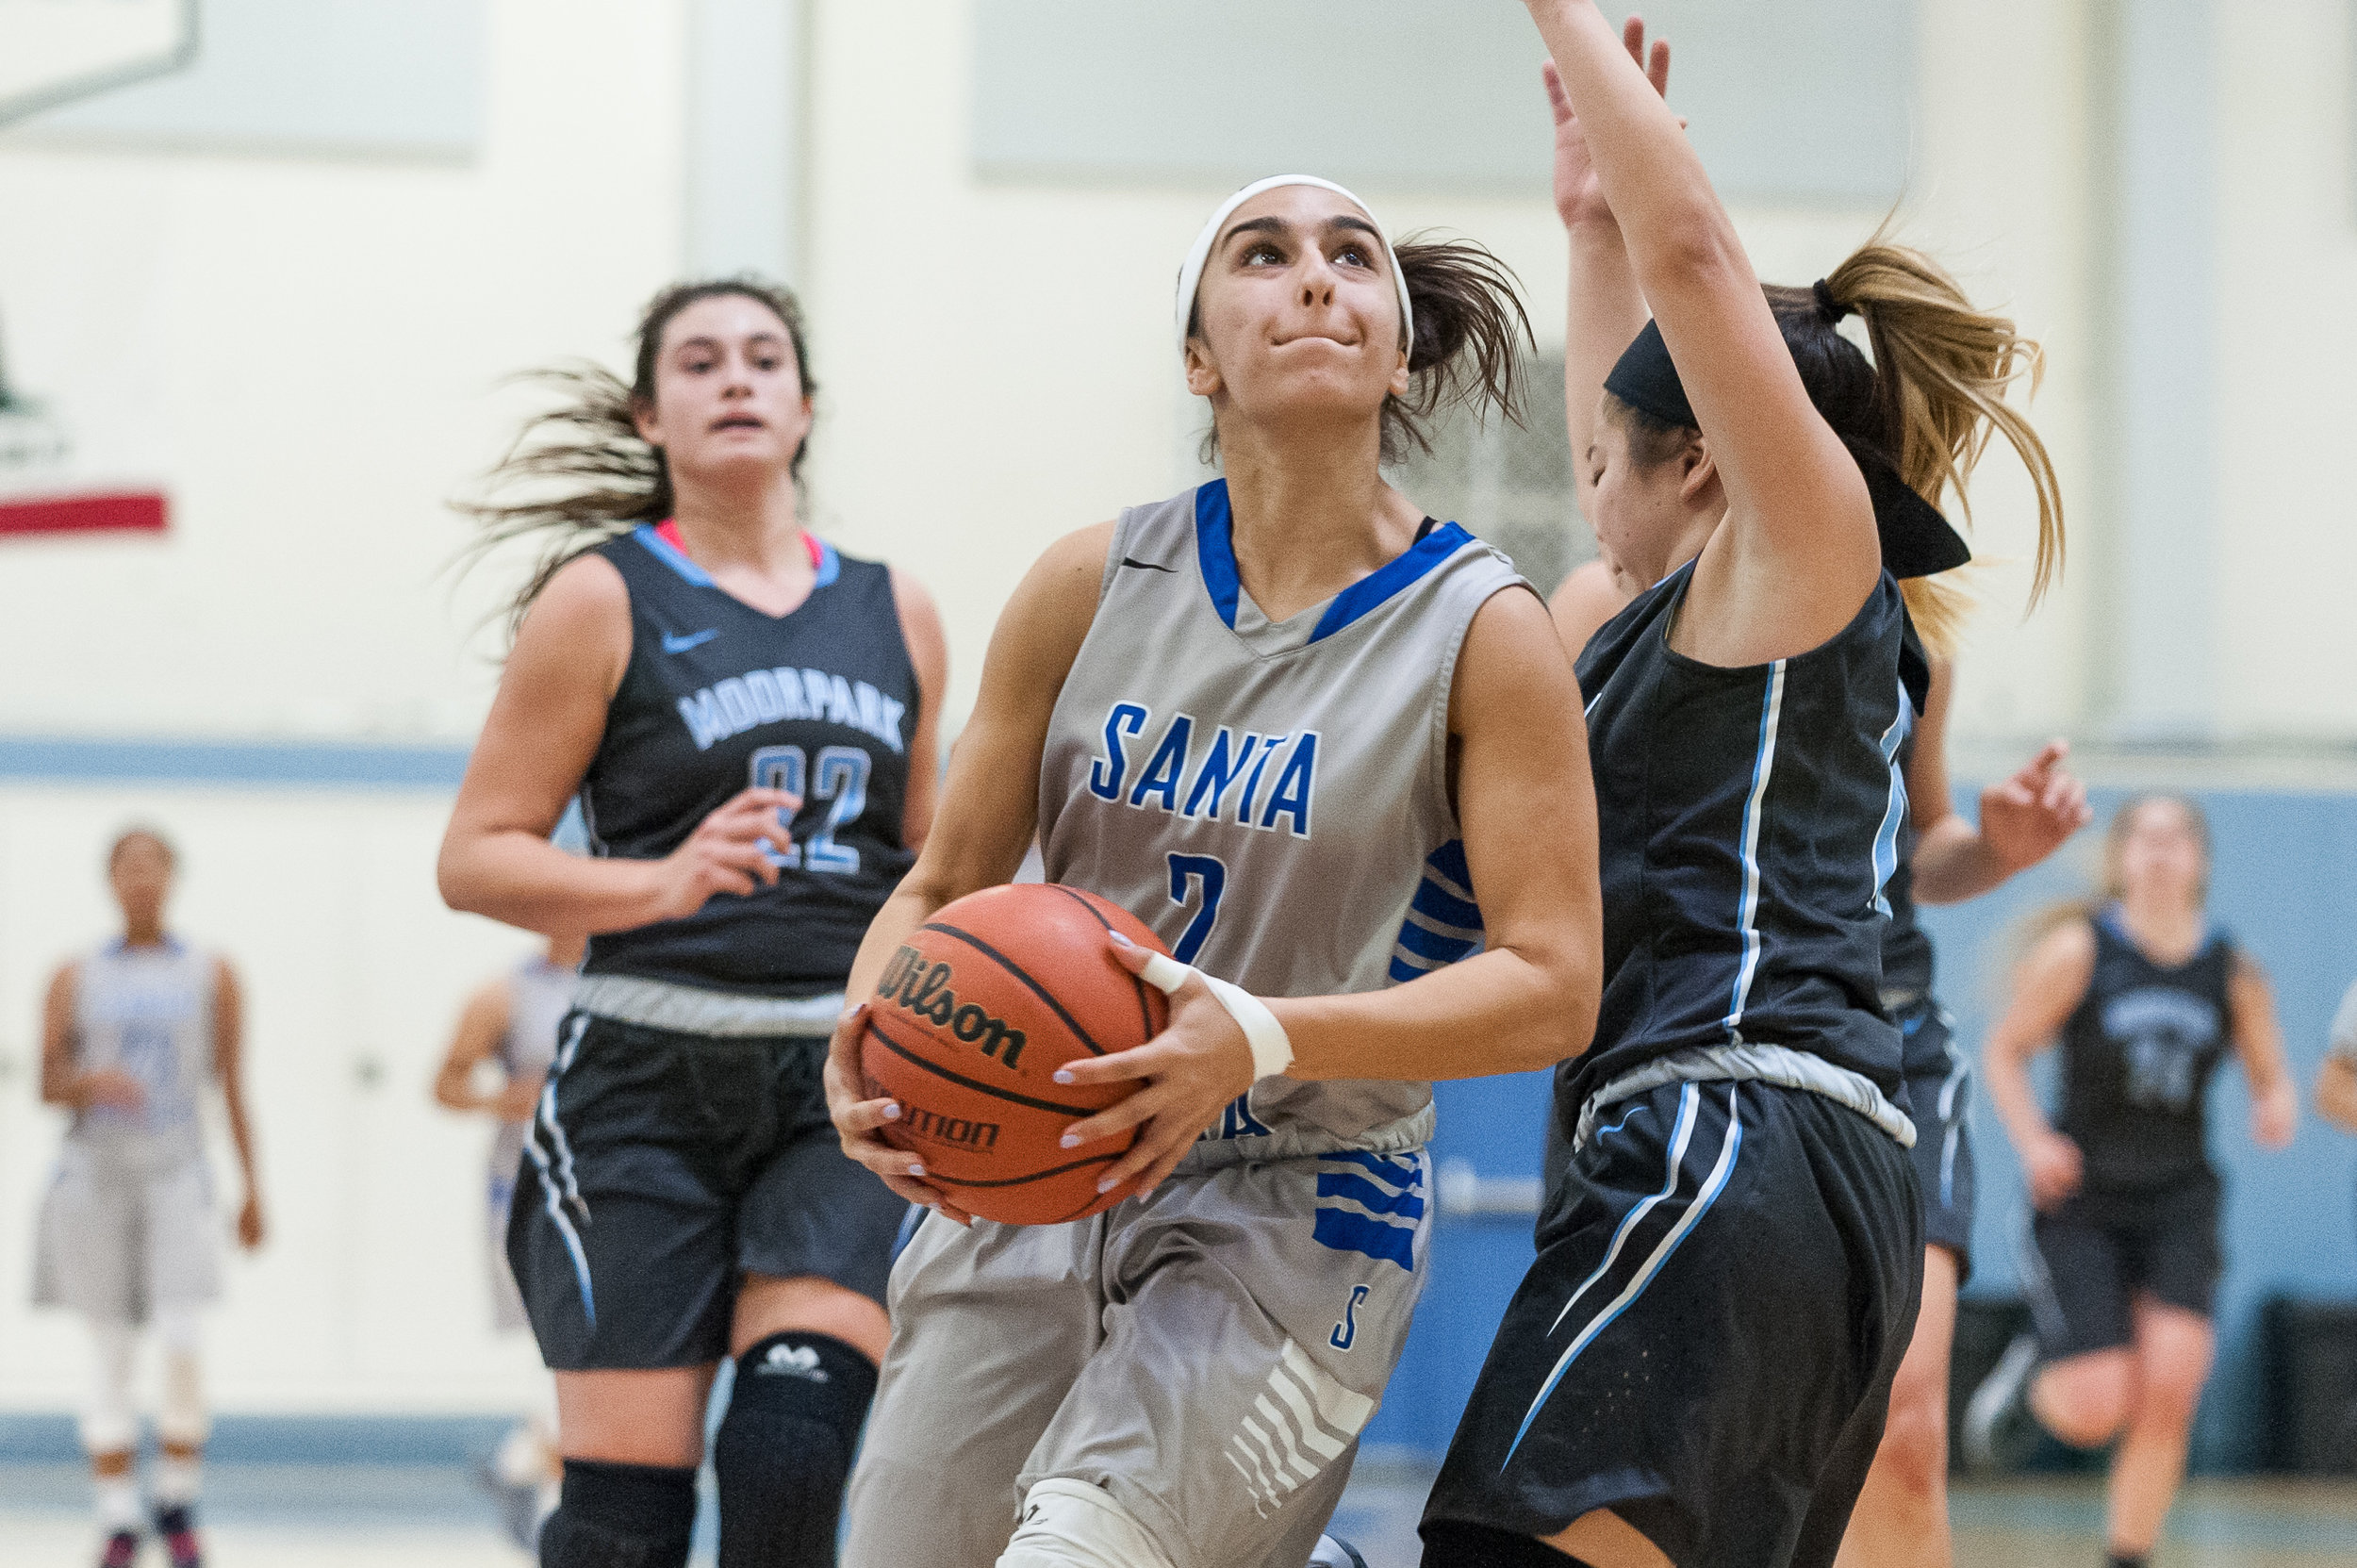 Guard Jessica Melamed (2) of Santa Monica College goes up for a contested layup during a fastbreak. The Santa Monica College Corsairs lose the game 52-69 to the Moorpark College Raiders. The game was held at the SMC Pavilion at the Santa Monica College Main Campus in Santa Monica, Calif.. December 9, 2017. (Photo by: Justin Han/Corsair Staff)